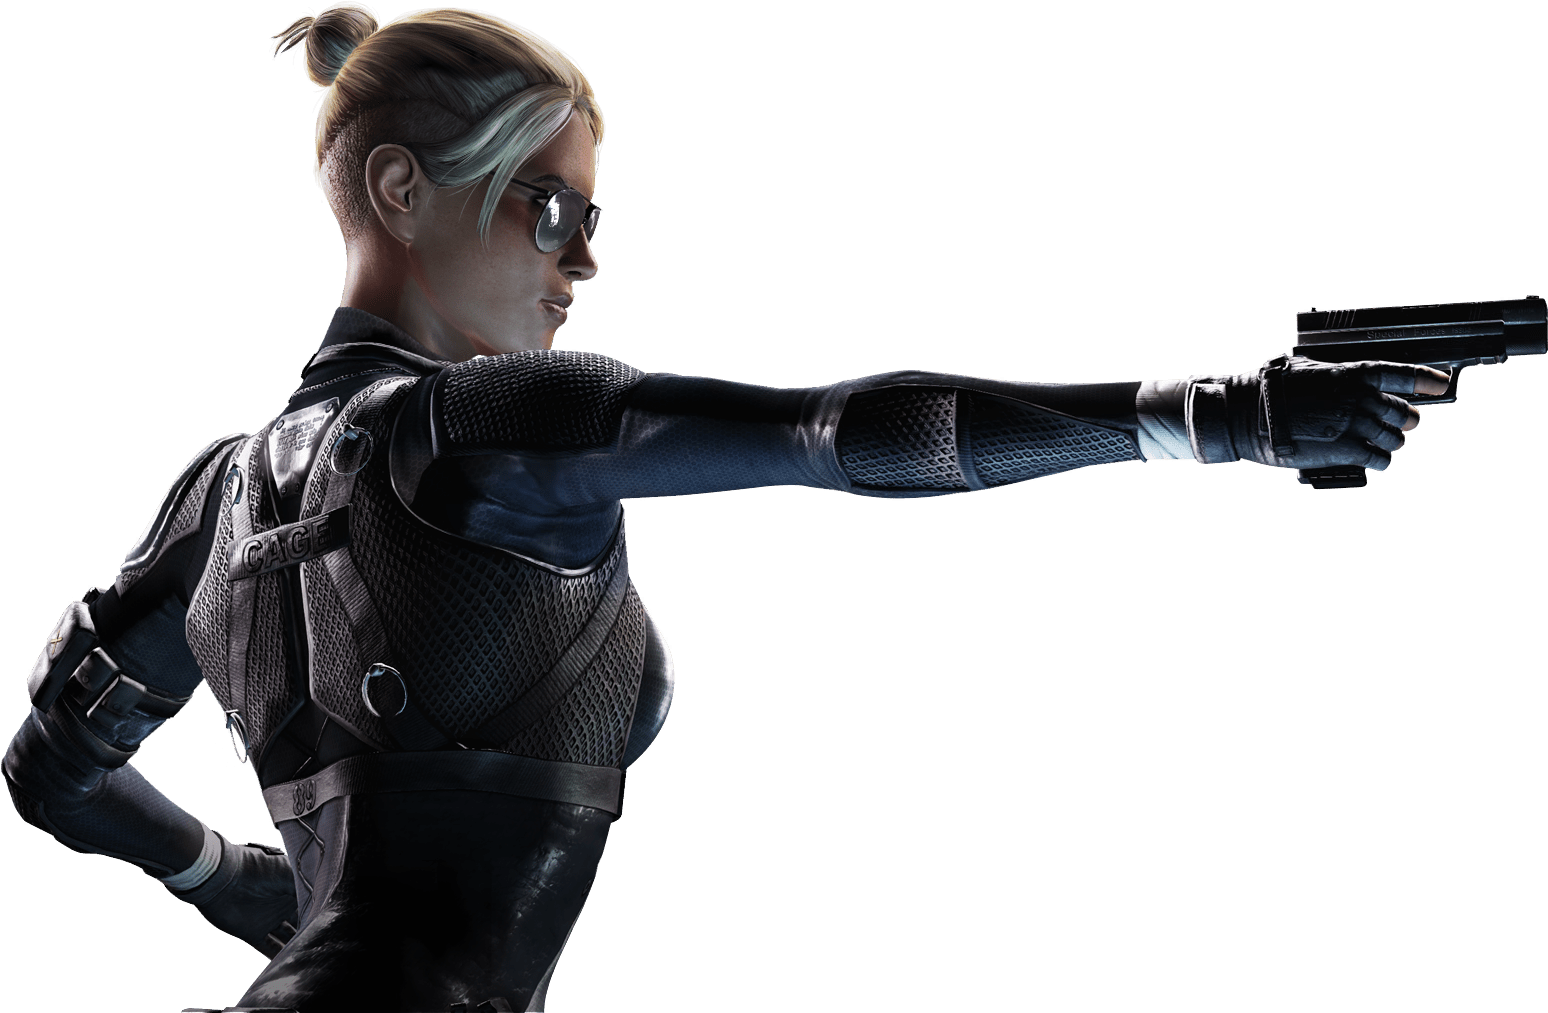 3d 3d Wallpaper Mkwarehouse Mortal Kombat X Cassie Cage